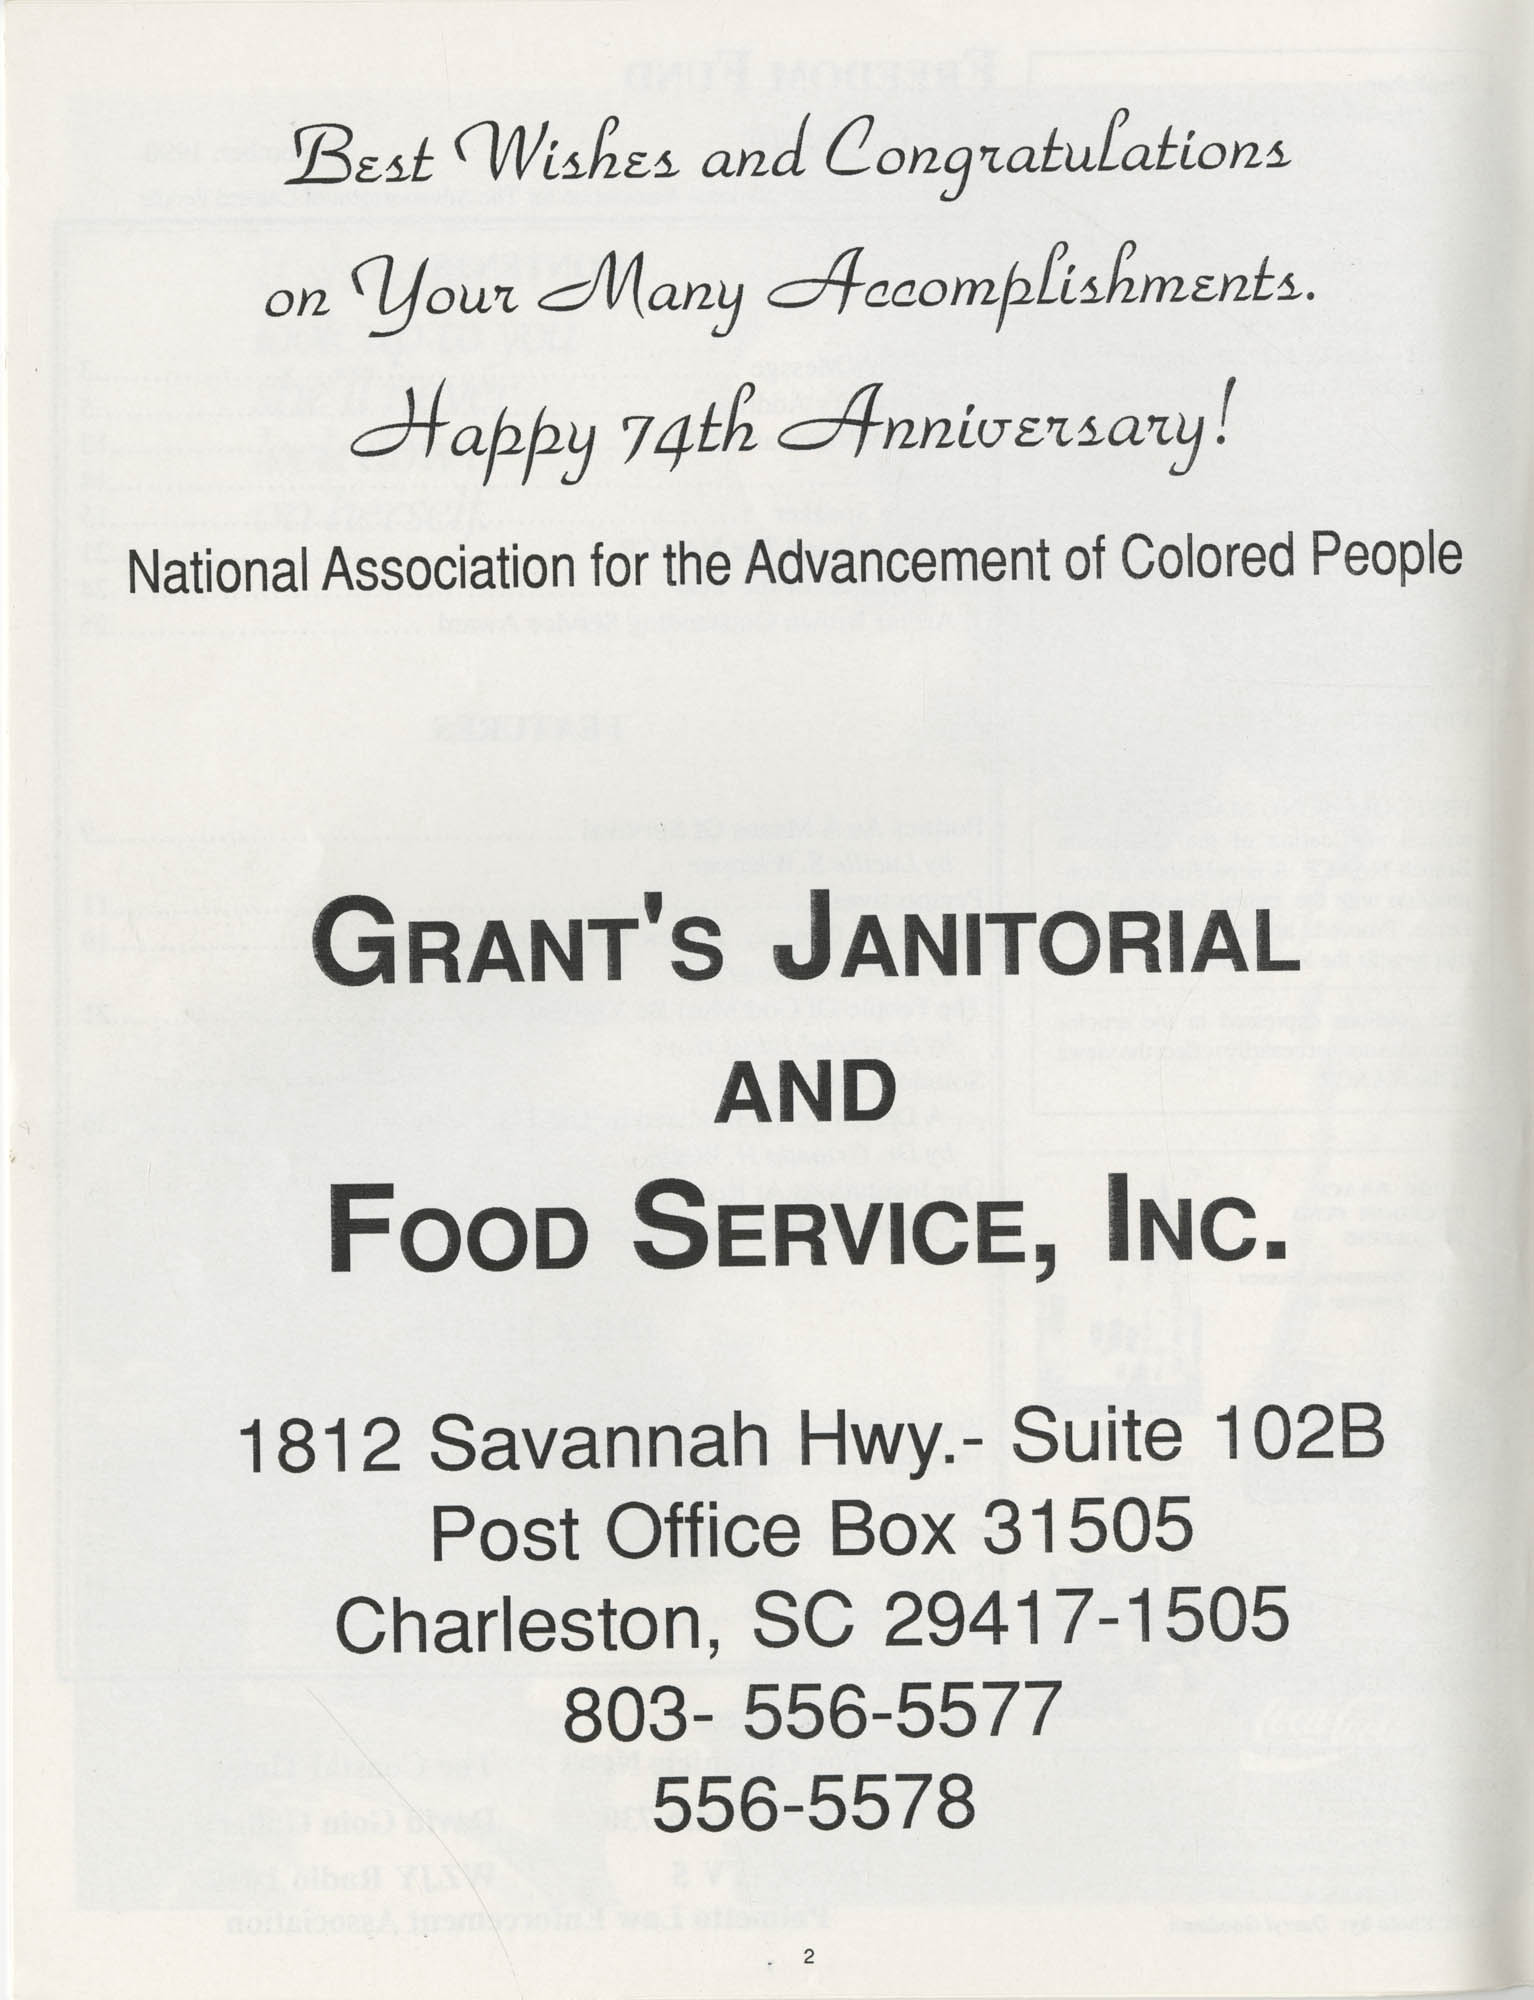 1990 NAACP Freedom Fund Magazine, Charleston Branch of the NAACP, 74th Anniversary, Page 2